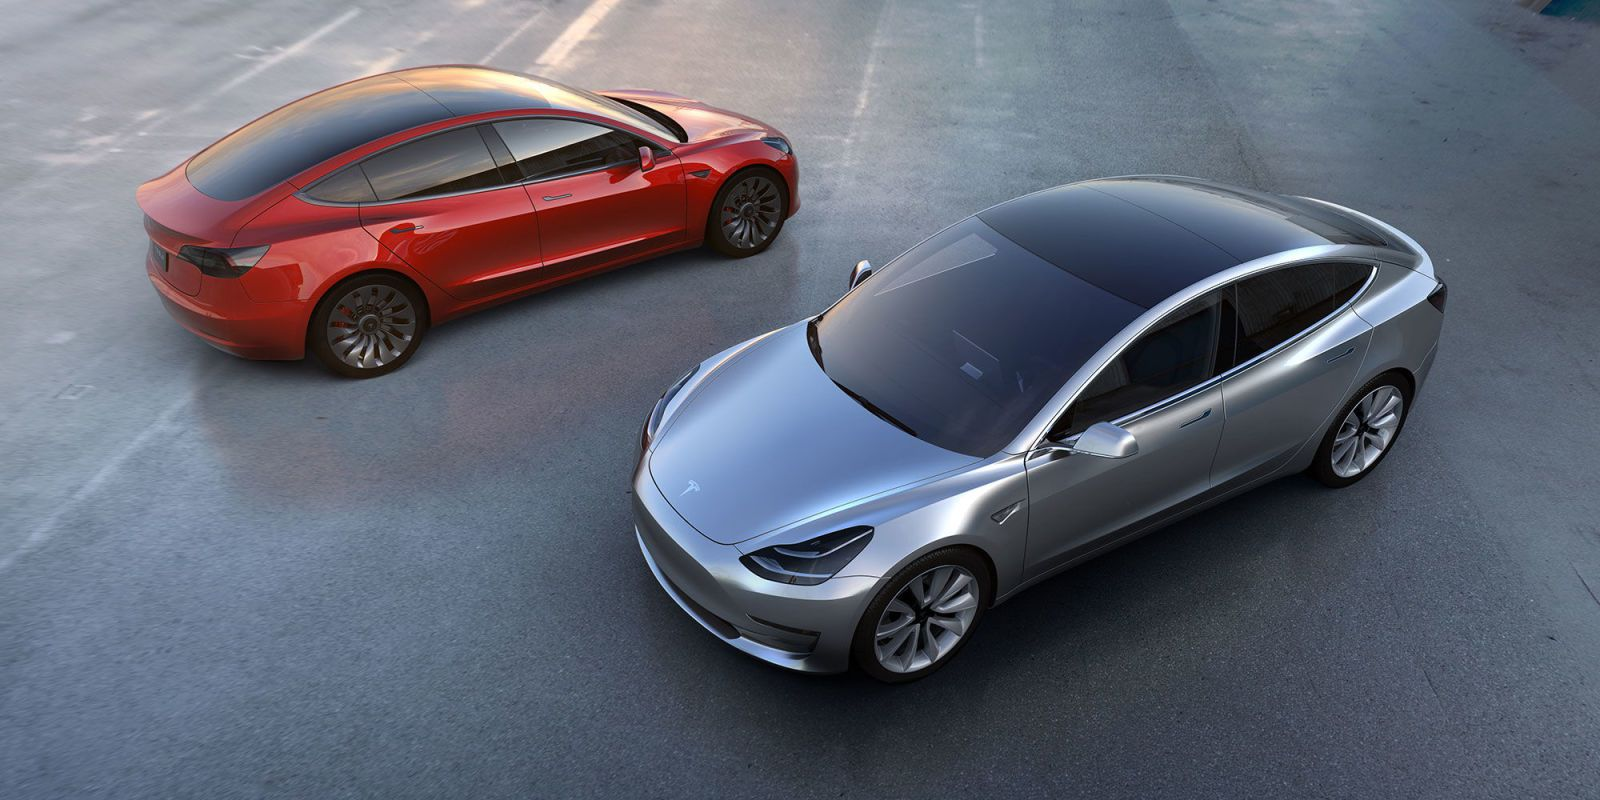 All About the Tesla Model 3